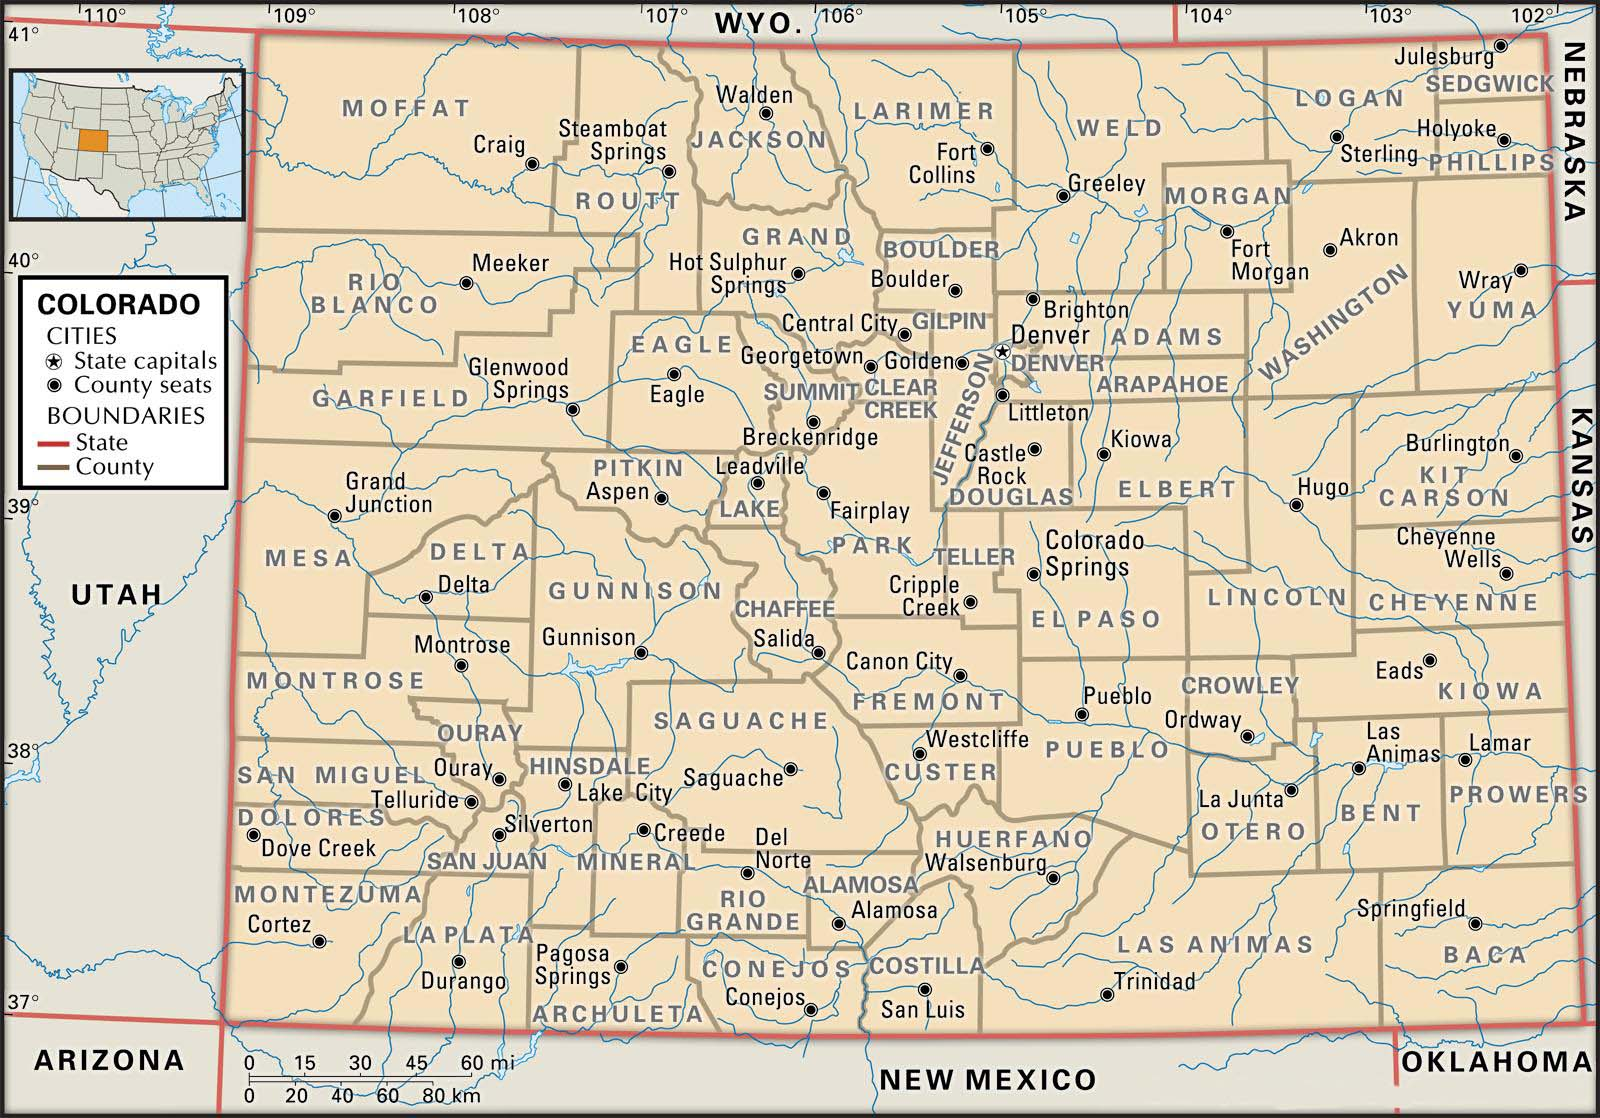 image regarding Printable Map of Colorado named Place and County Maps of Colorado